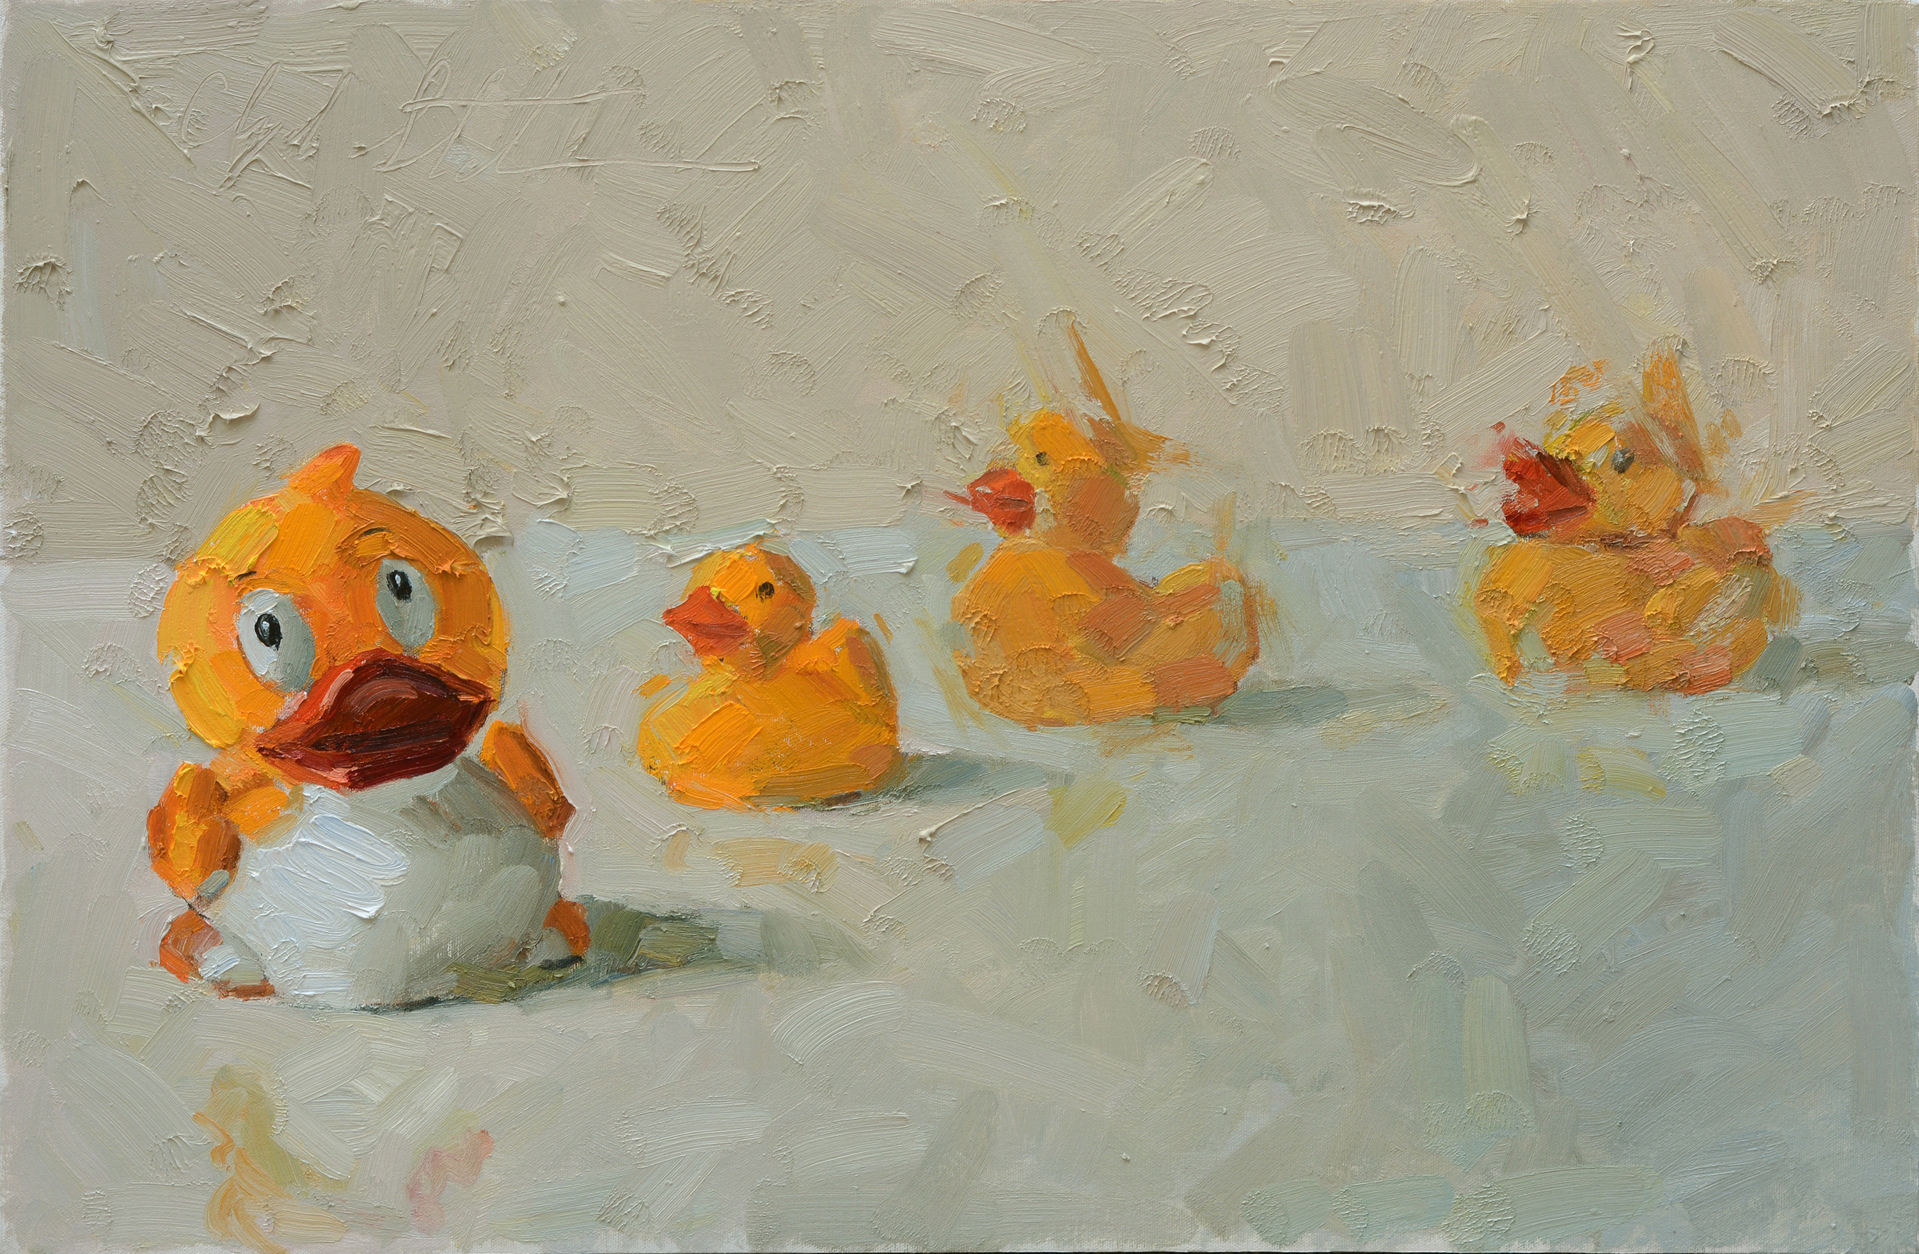 Family Outing by Clyde Steadman